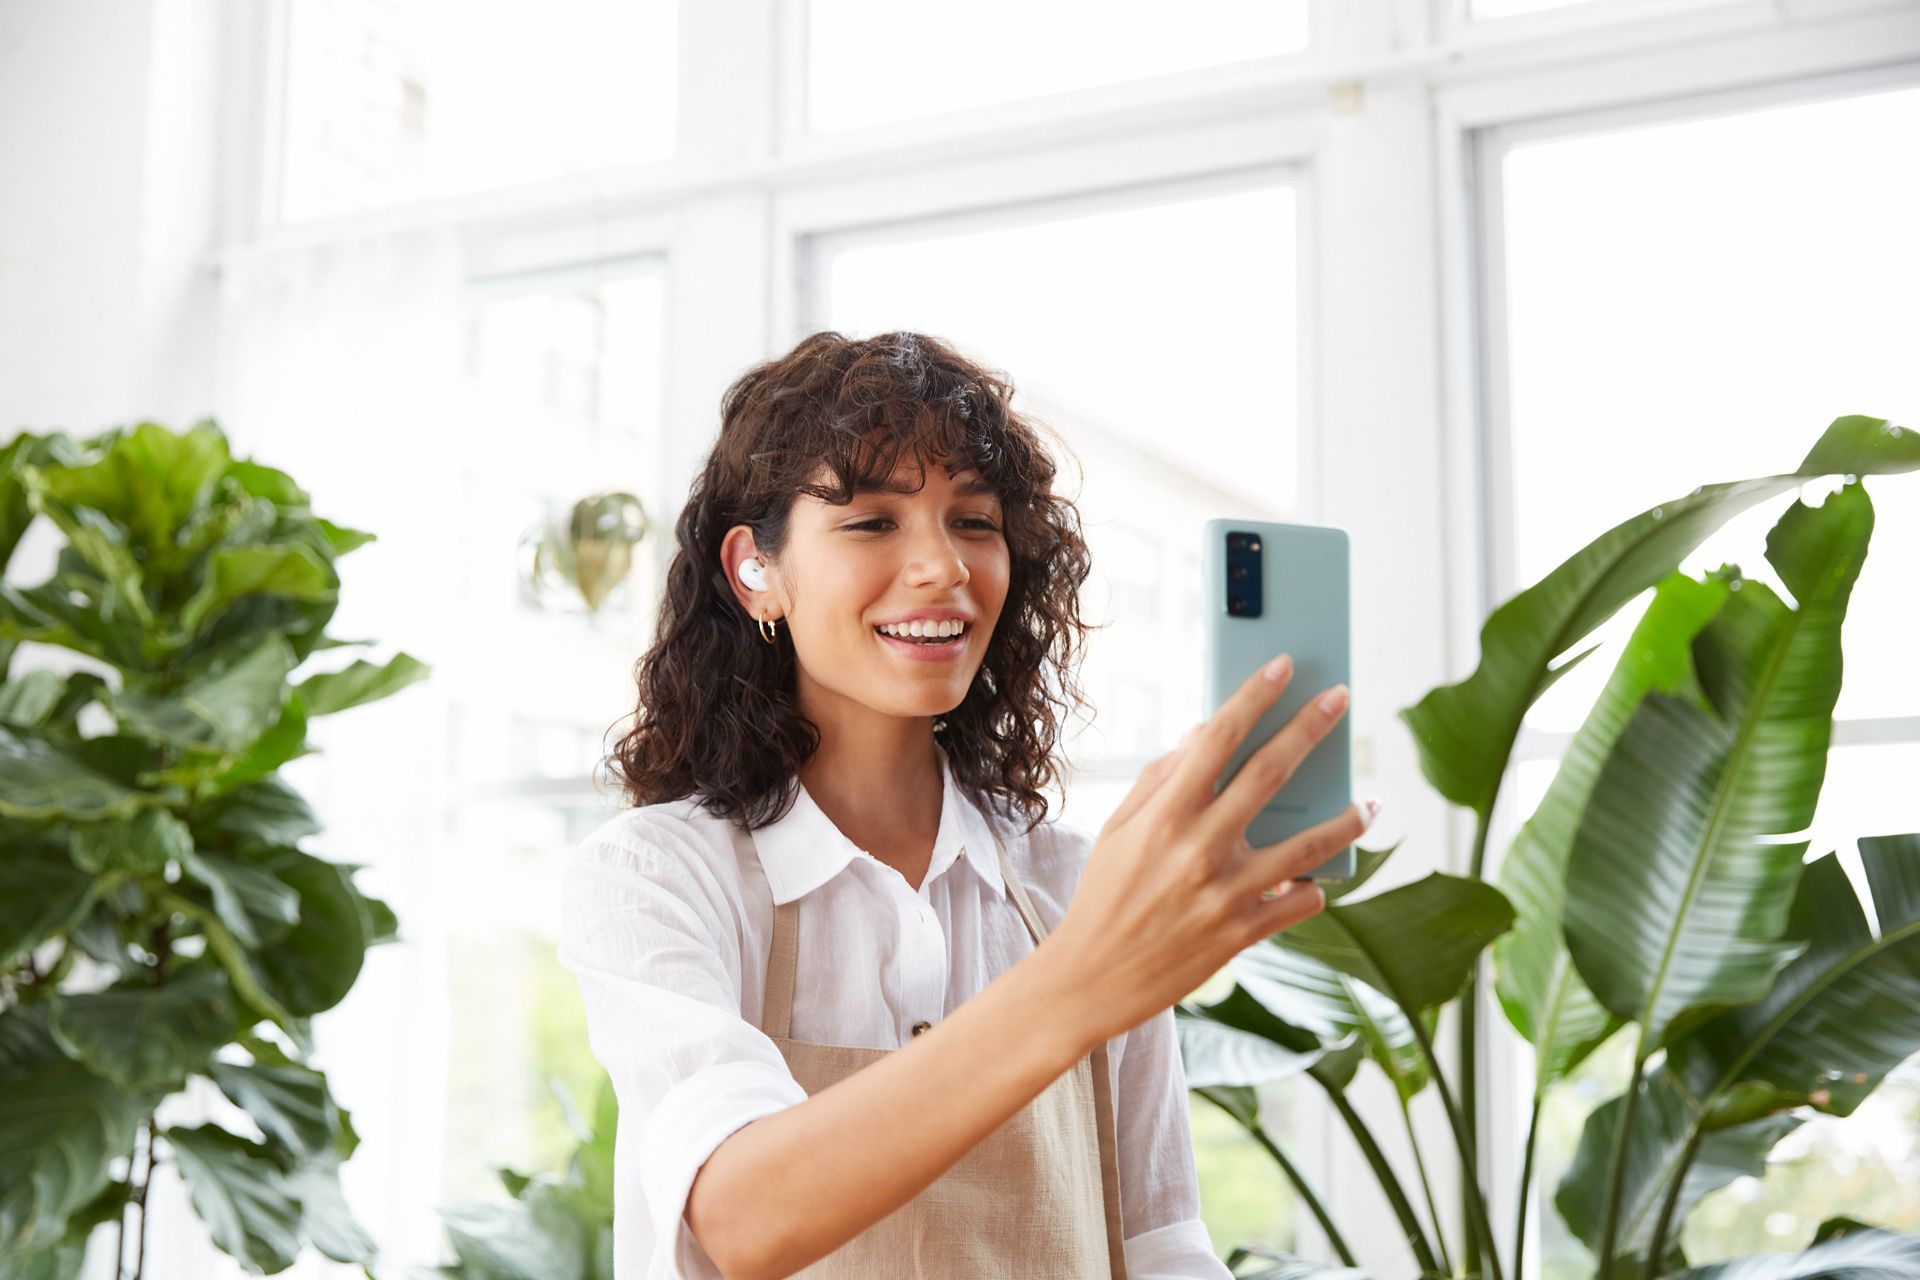 curly haired female model wearing beige apron and white shirt in nursery surrounded by plants talking to a turquoise smartphone wearing wireless earpiece photographed by Oumayma B Tanfous for Samsung phone campaign